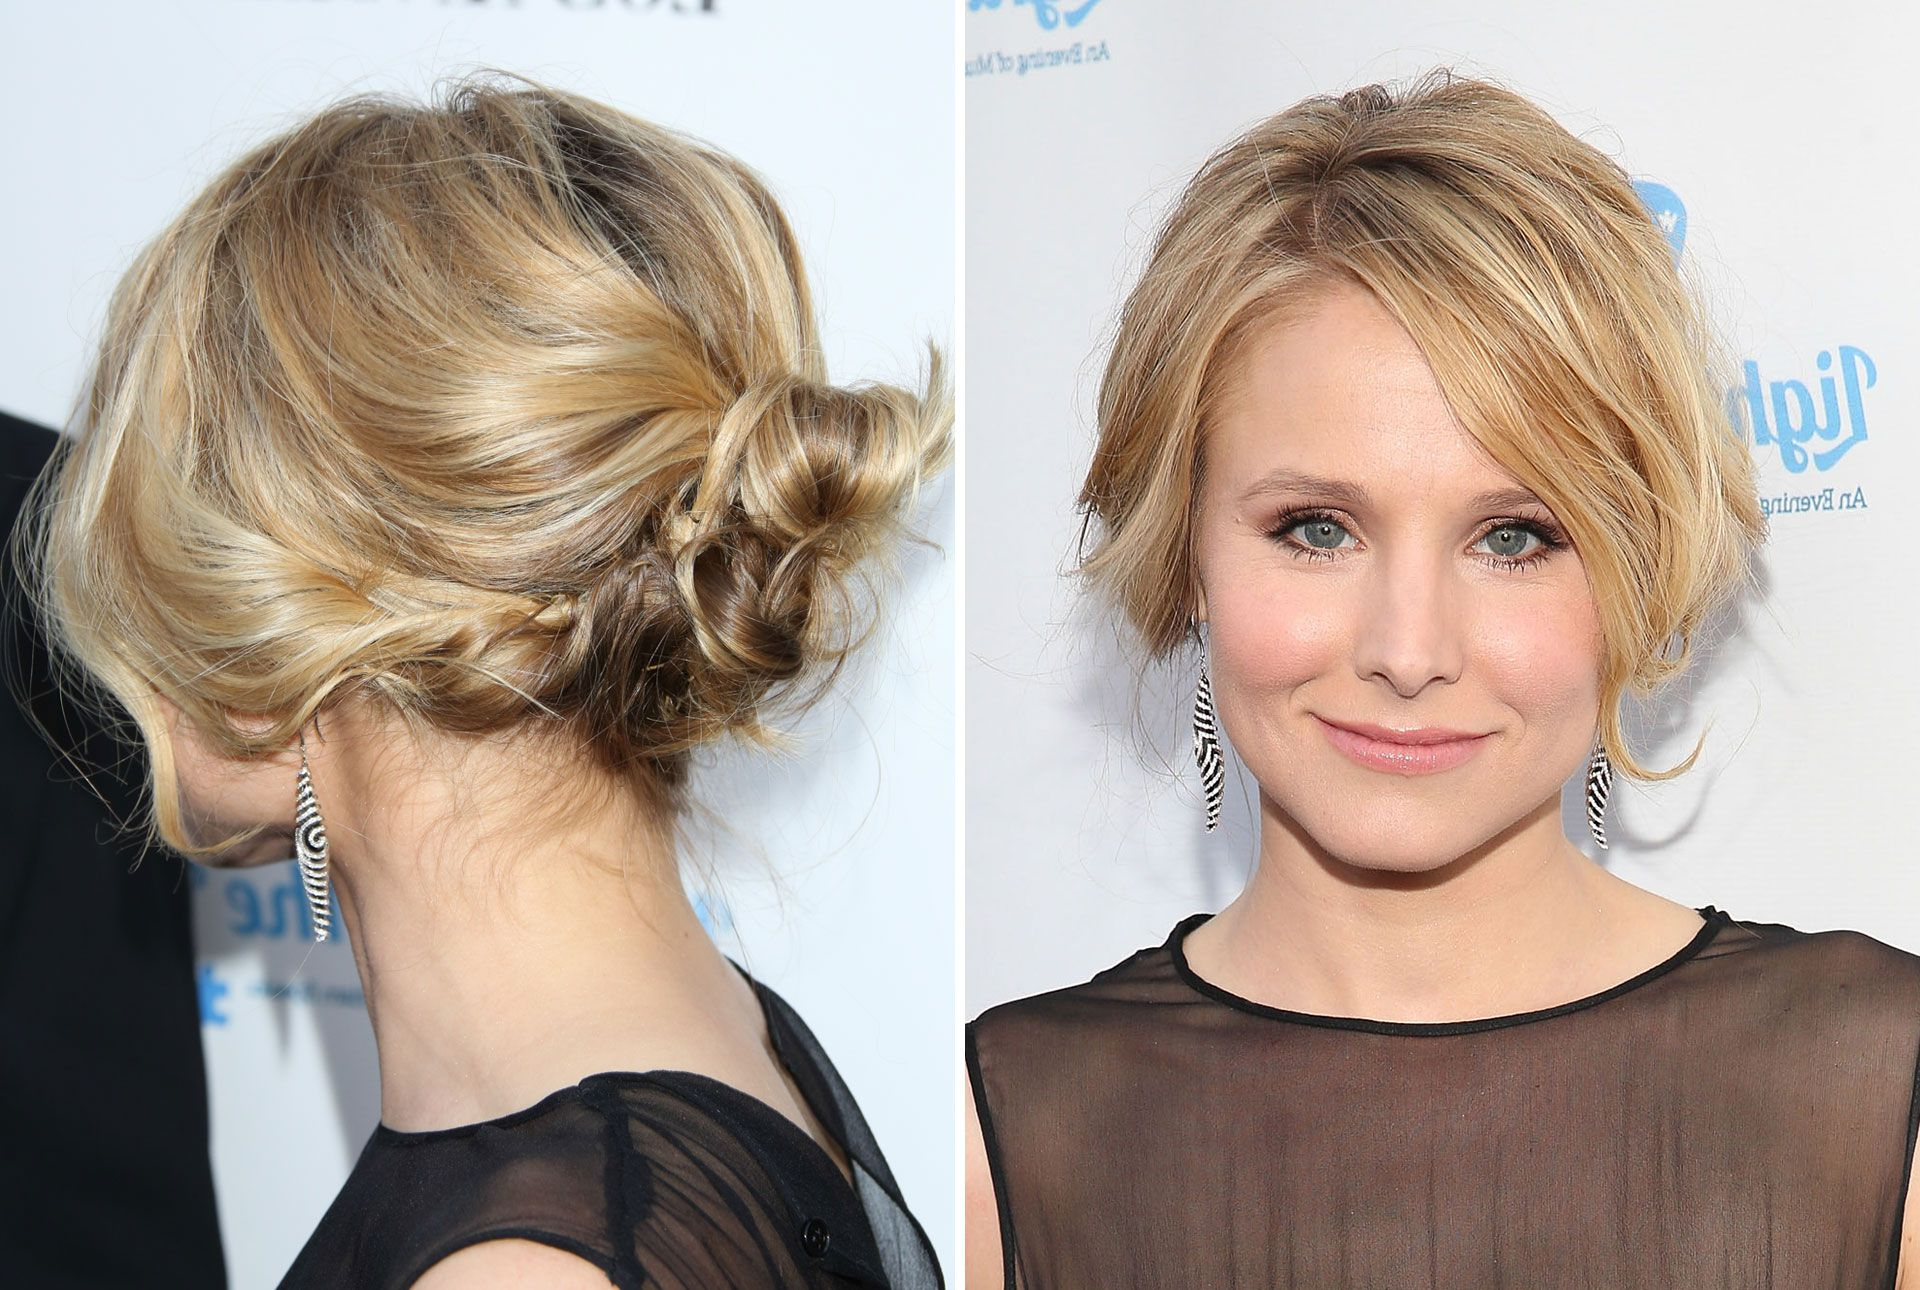 20 Easy Wedding Guest Hairstyles – Best Hair Ideas For Wedding Guests With Regard To Hairstyles For A Wedding Guest With Short Hair (View 4 of 25)